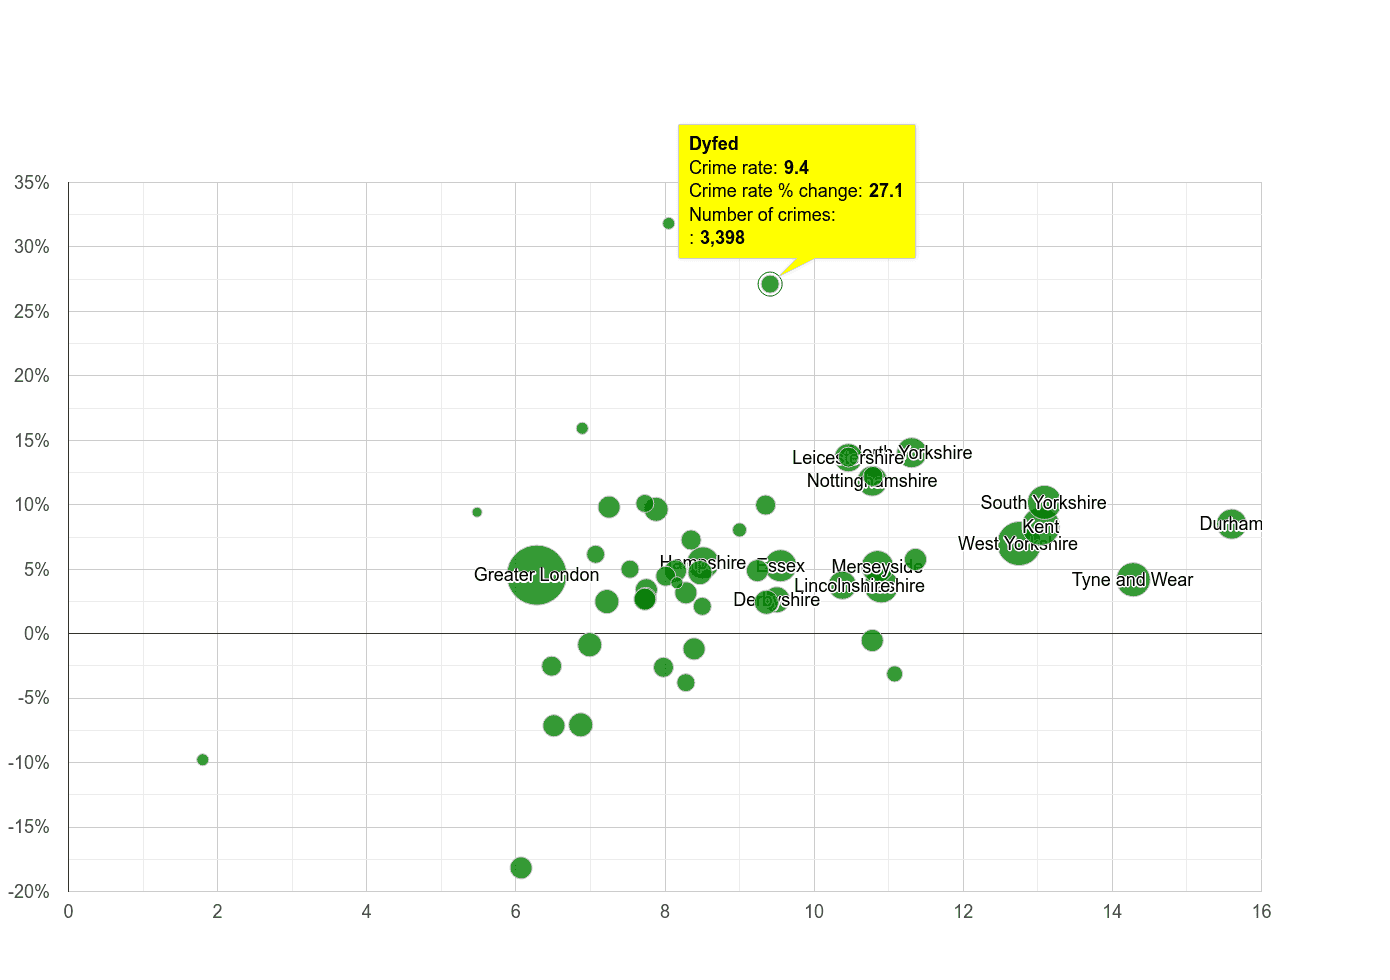 Dyfed criminal damage and arson crime rate compared to other counties